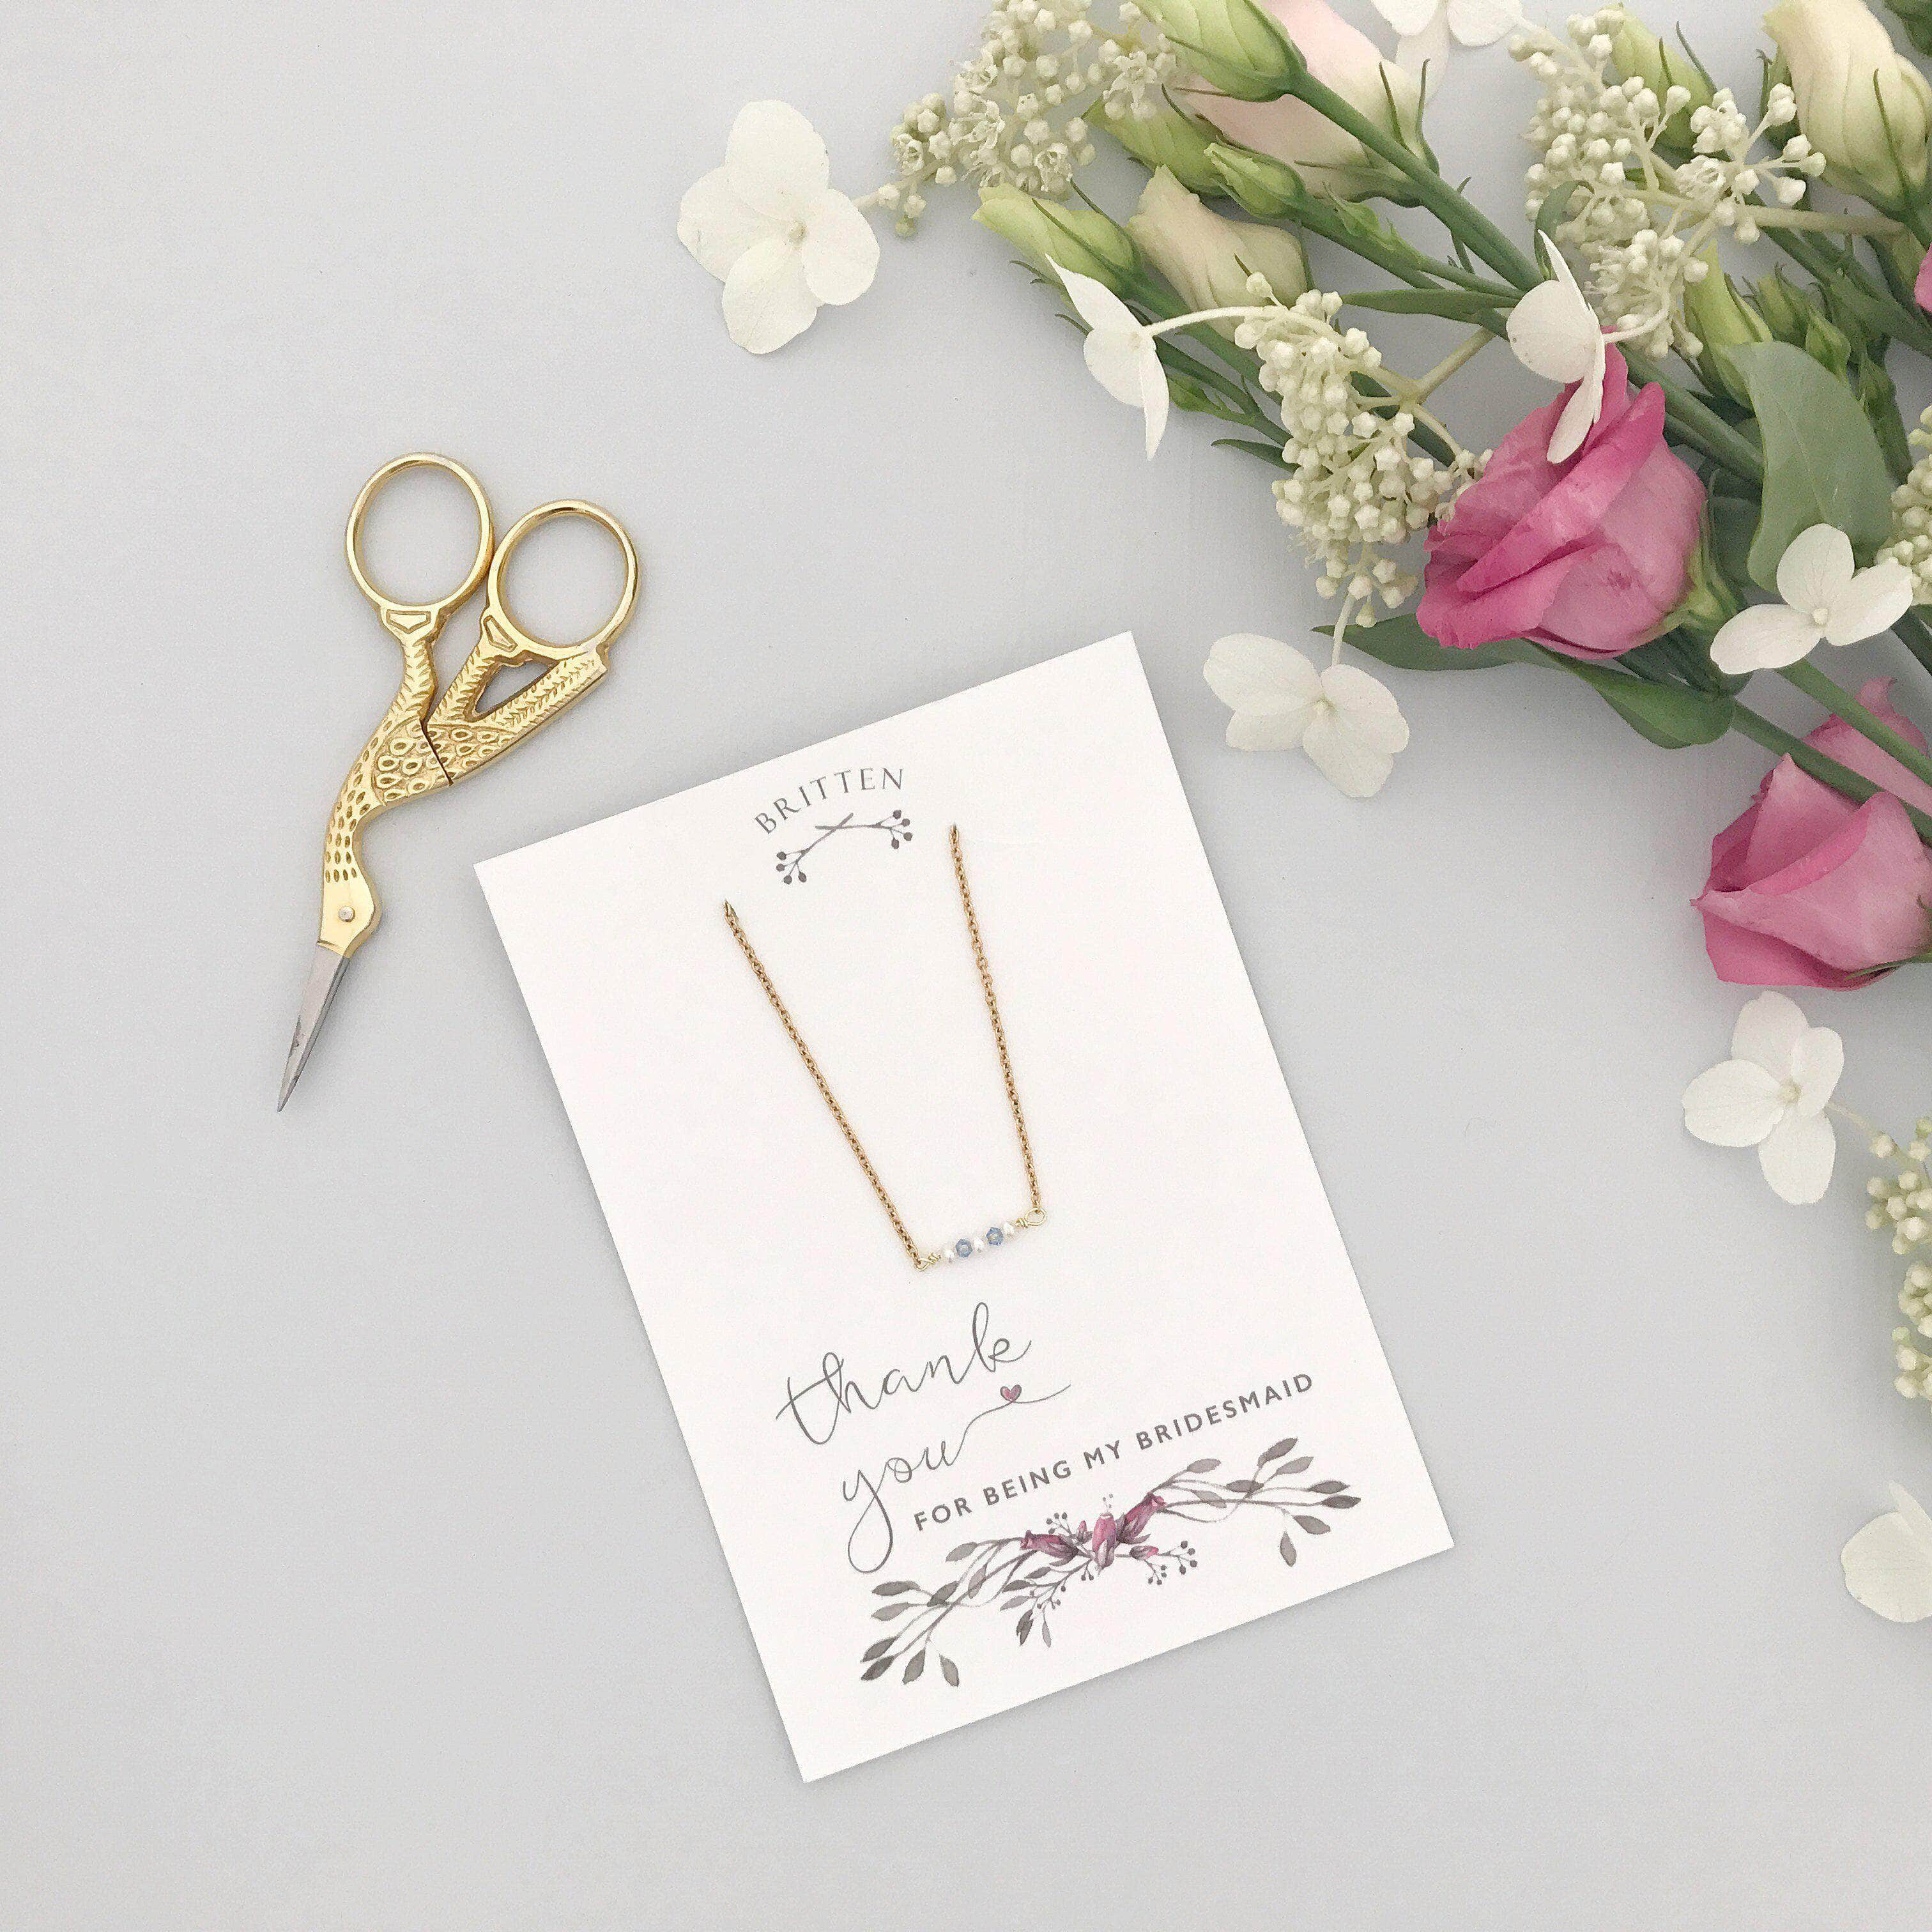 therapy bridesmaid products boutiques necklace